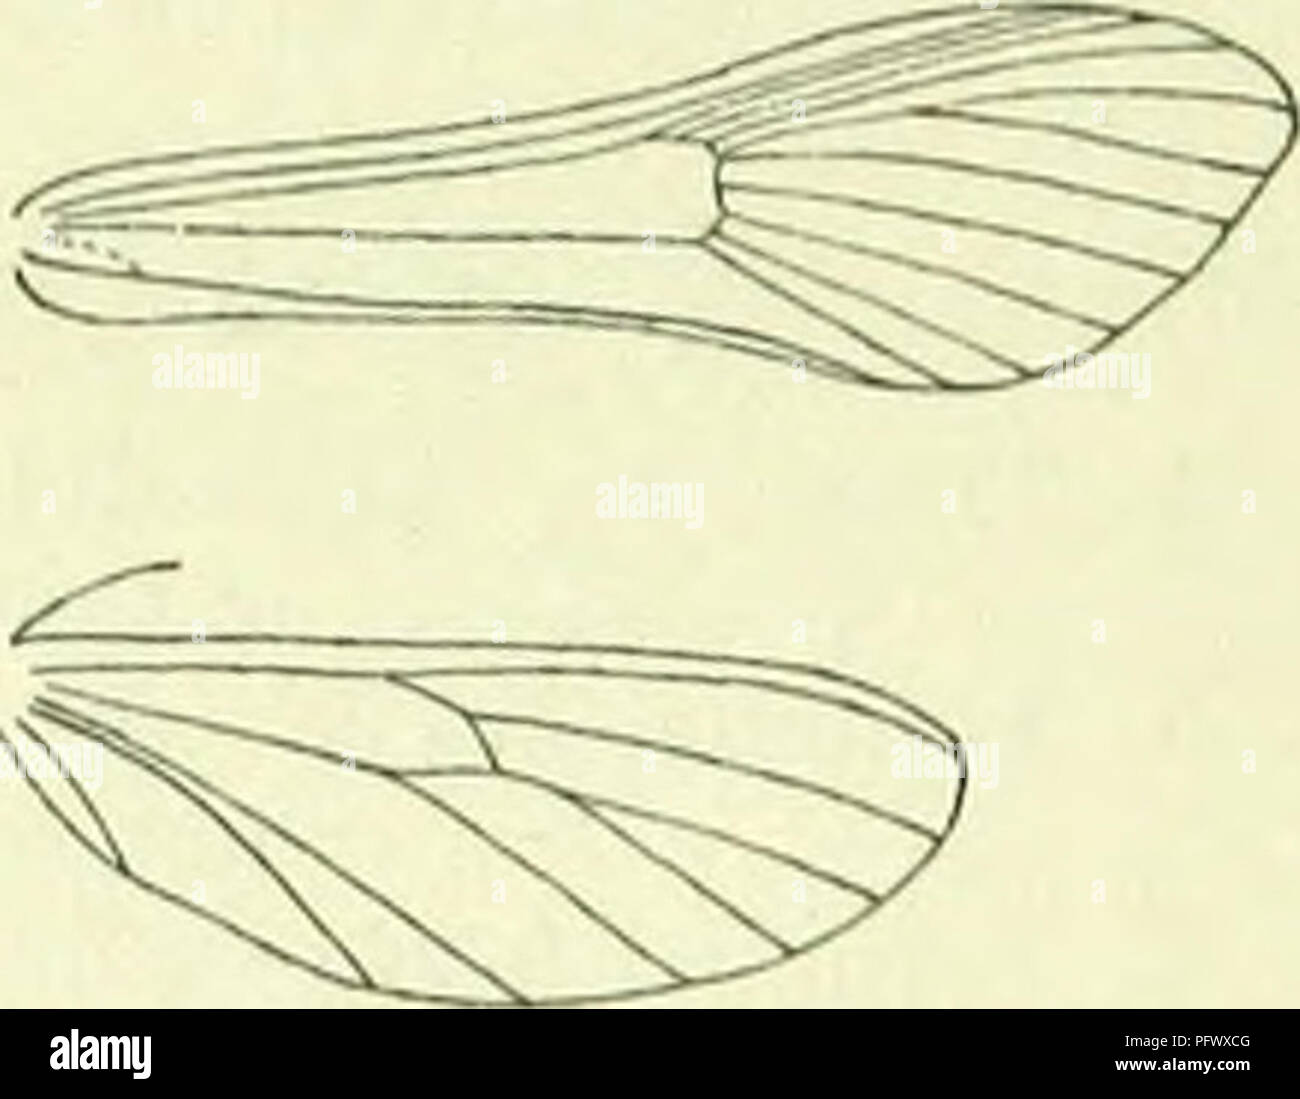 """. A handbook of British lepidoptera. Lepidoptera. AEGEBIADAE 563 2. Tongue rudimentary ; 7 of forewings to termeu 1. Aegbria. """" developed ; 7 of forewings to apex 2. Trochilium. 1. Aegbria, F. Head shortly rough-haired above. Tongue rudimentary. Antennae i, in <J lamellate. Labial palpi with second joint rough-scaled beneath, terminal loosely scaled. Abdomen stout. Forewings : 7 to termen. Hindwings : 3 and 4 stalked. A small genus, characteristic of the European region. The imagos arc seldom observed, though the larvae are common. Collar yellow ... 2. crabroniformis. ,, dark fuscous . . .1 - Stock Image"""